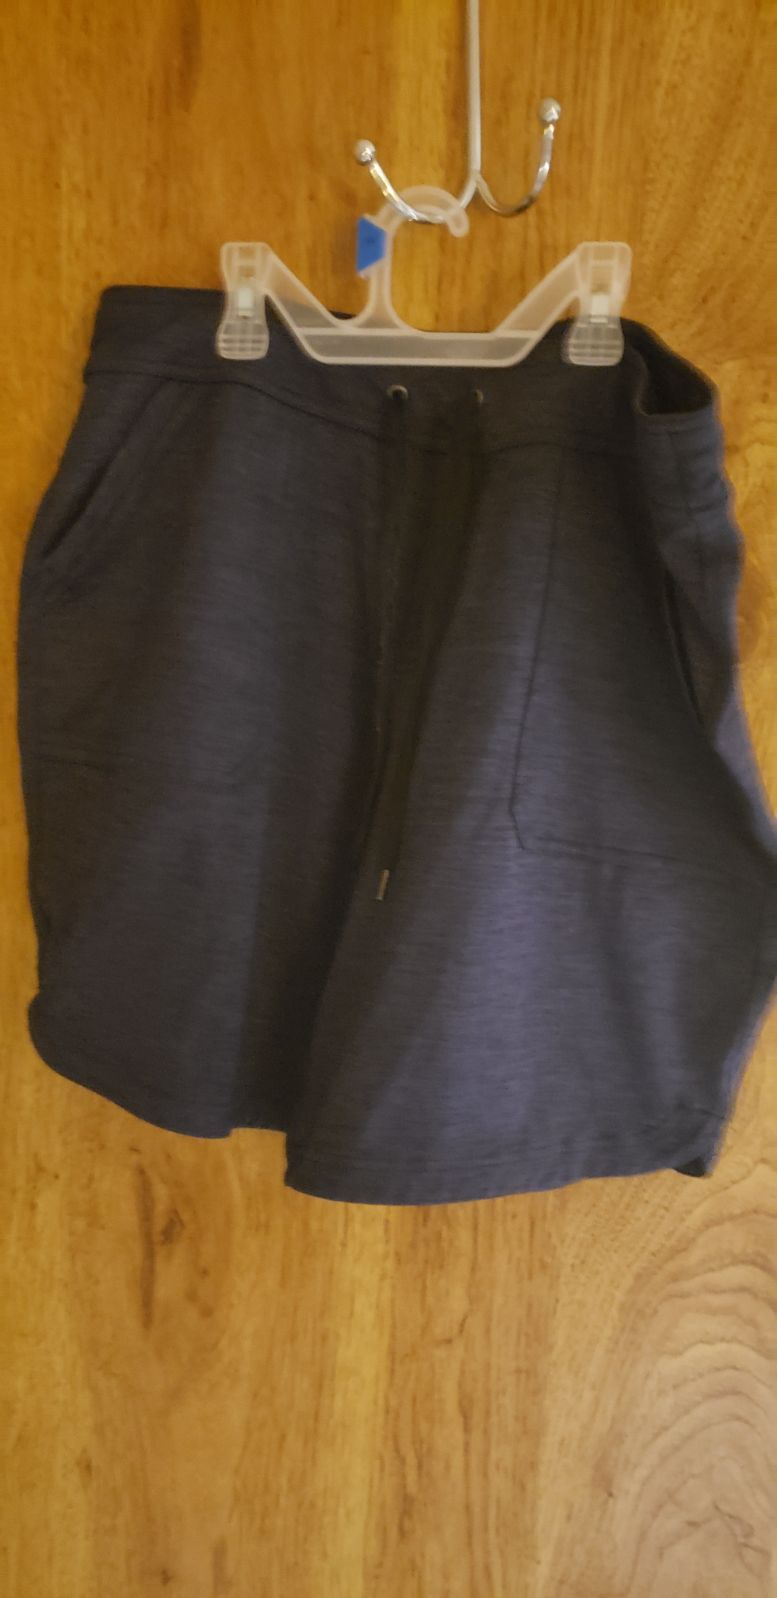 Mens exercise shorts